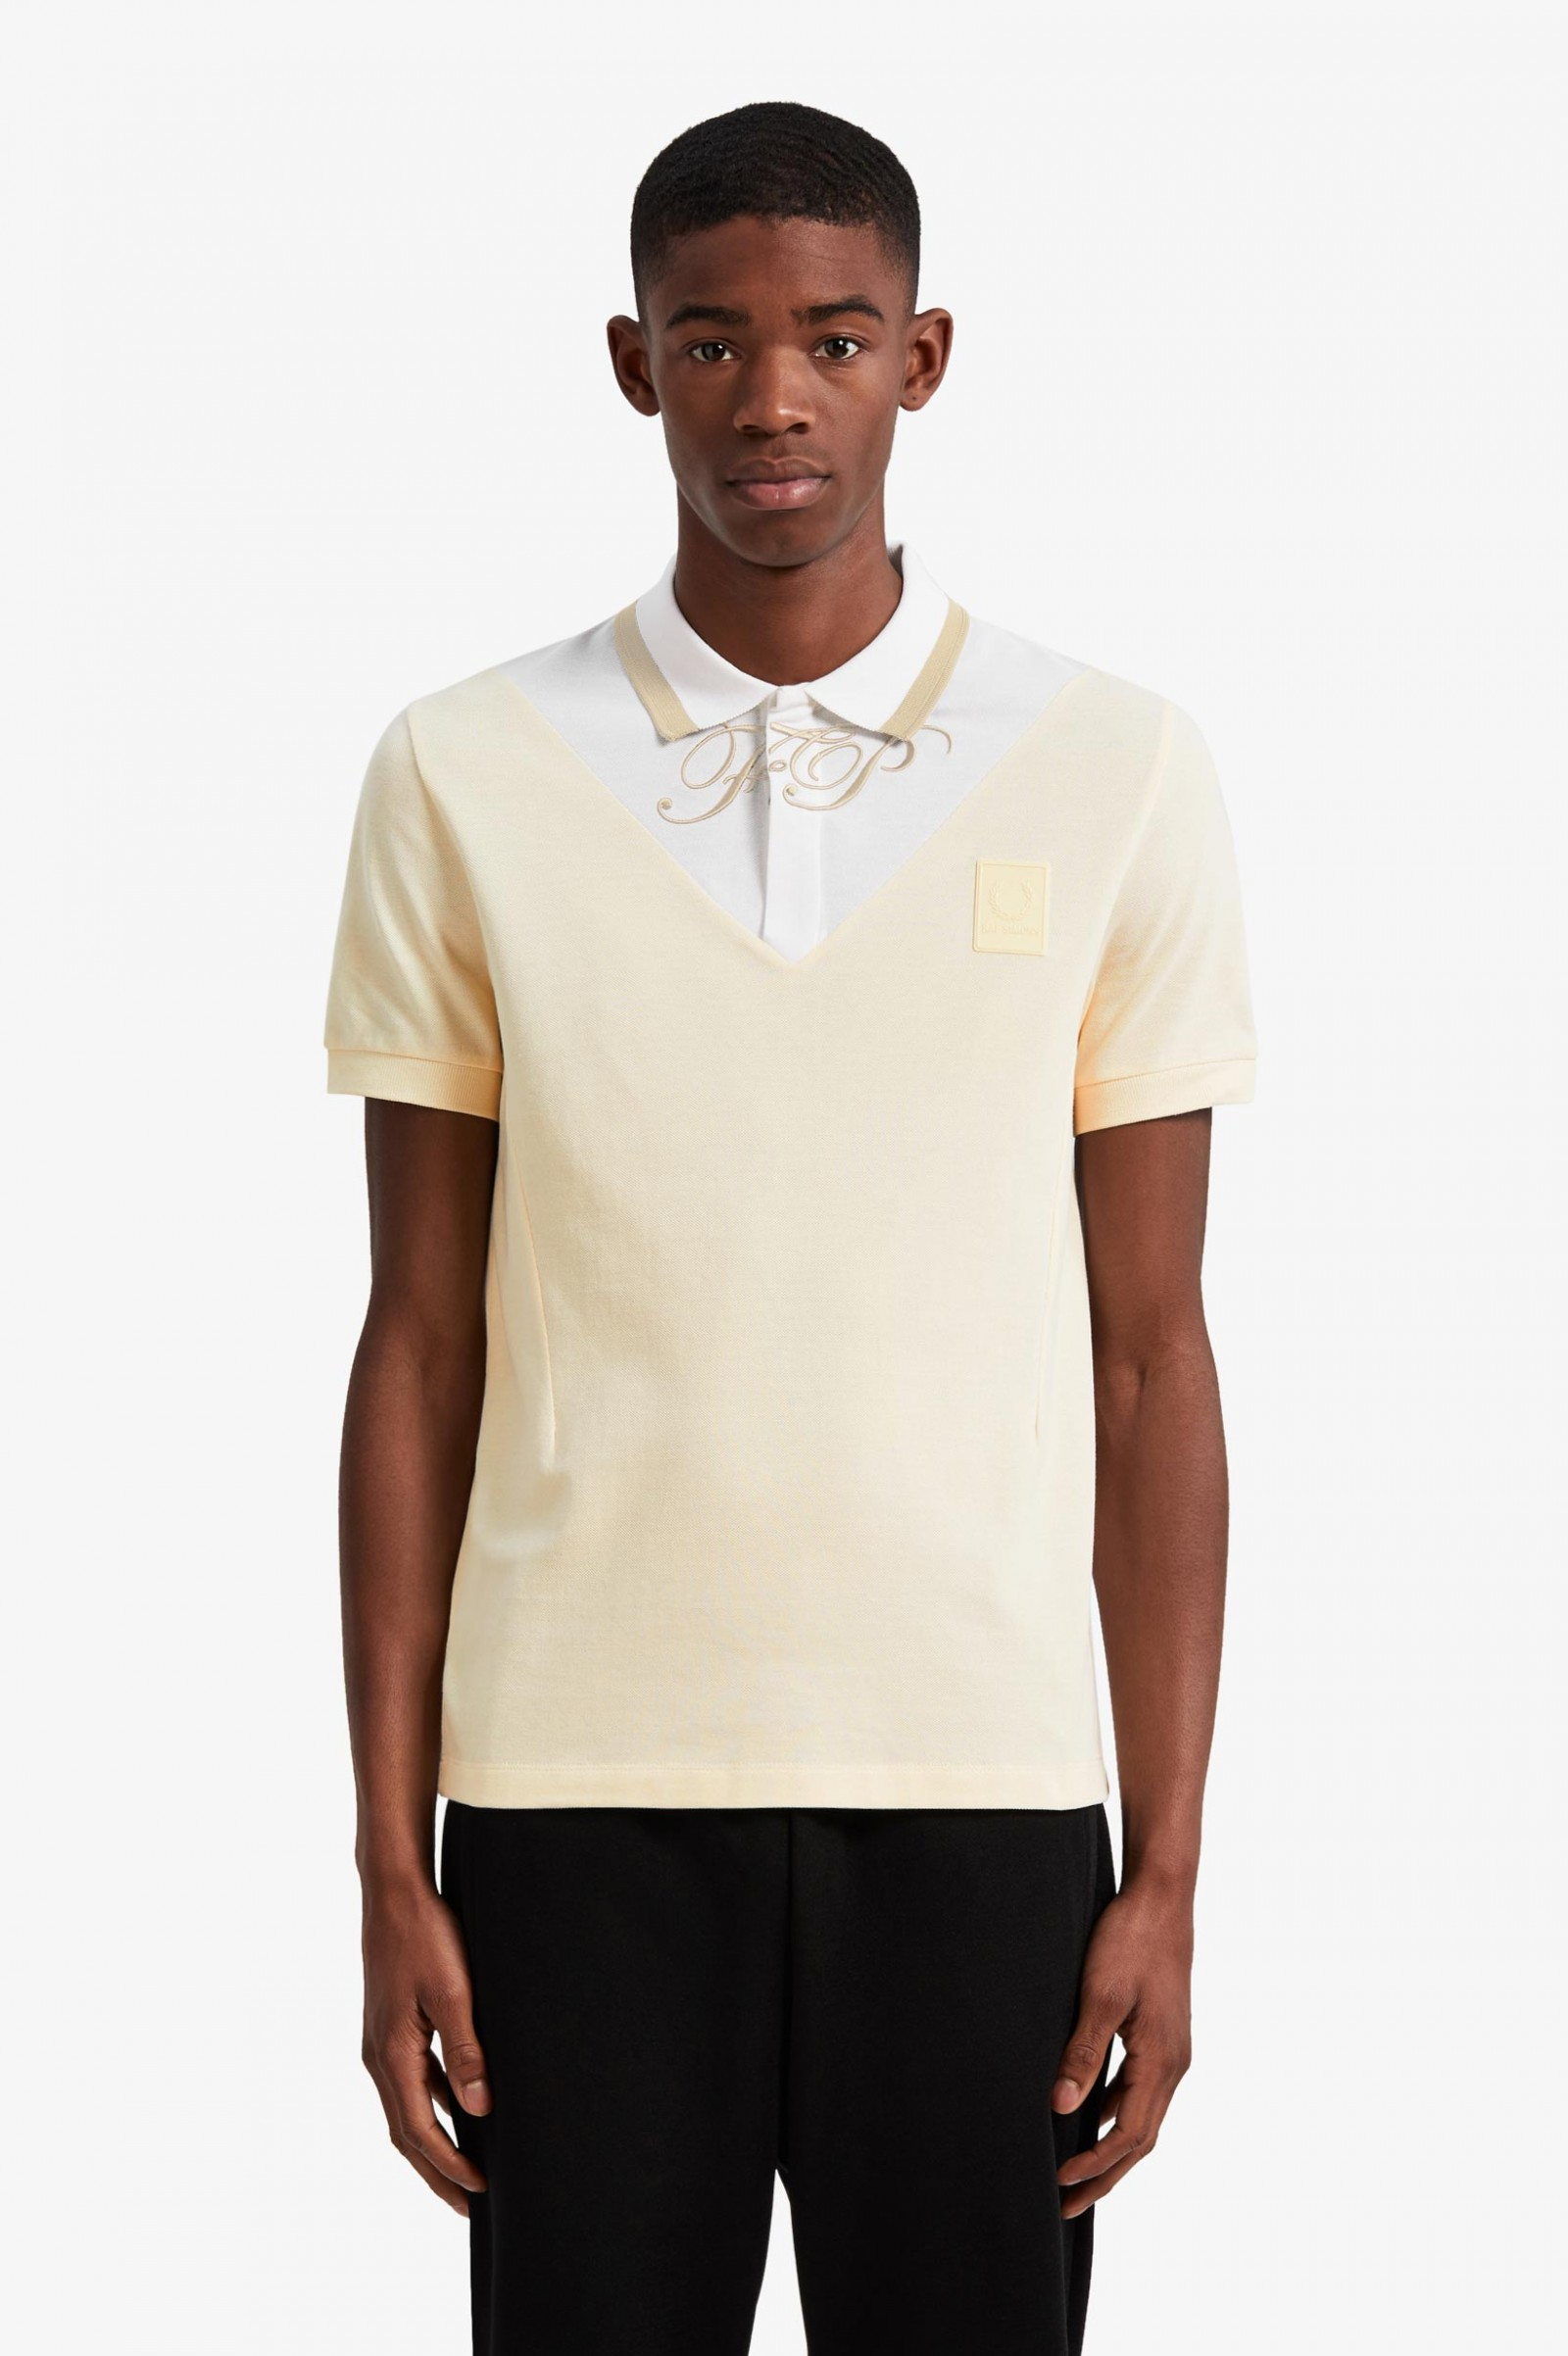 V Insert Polo Shirt Polar Polo Shirts Fred Perry Uk